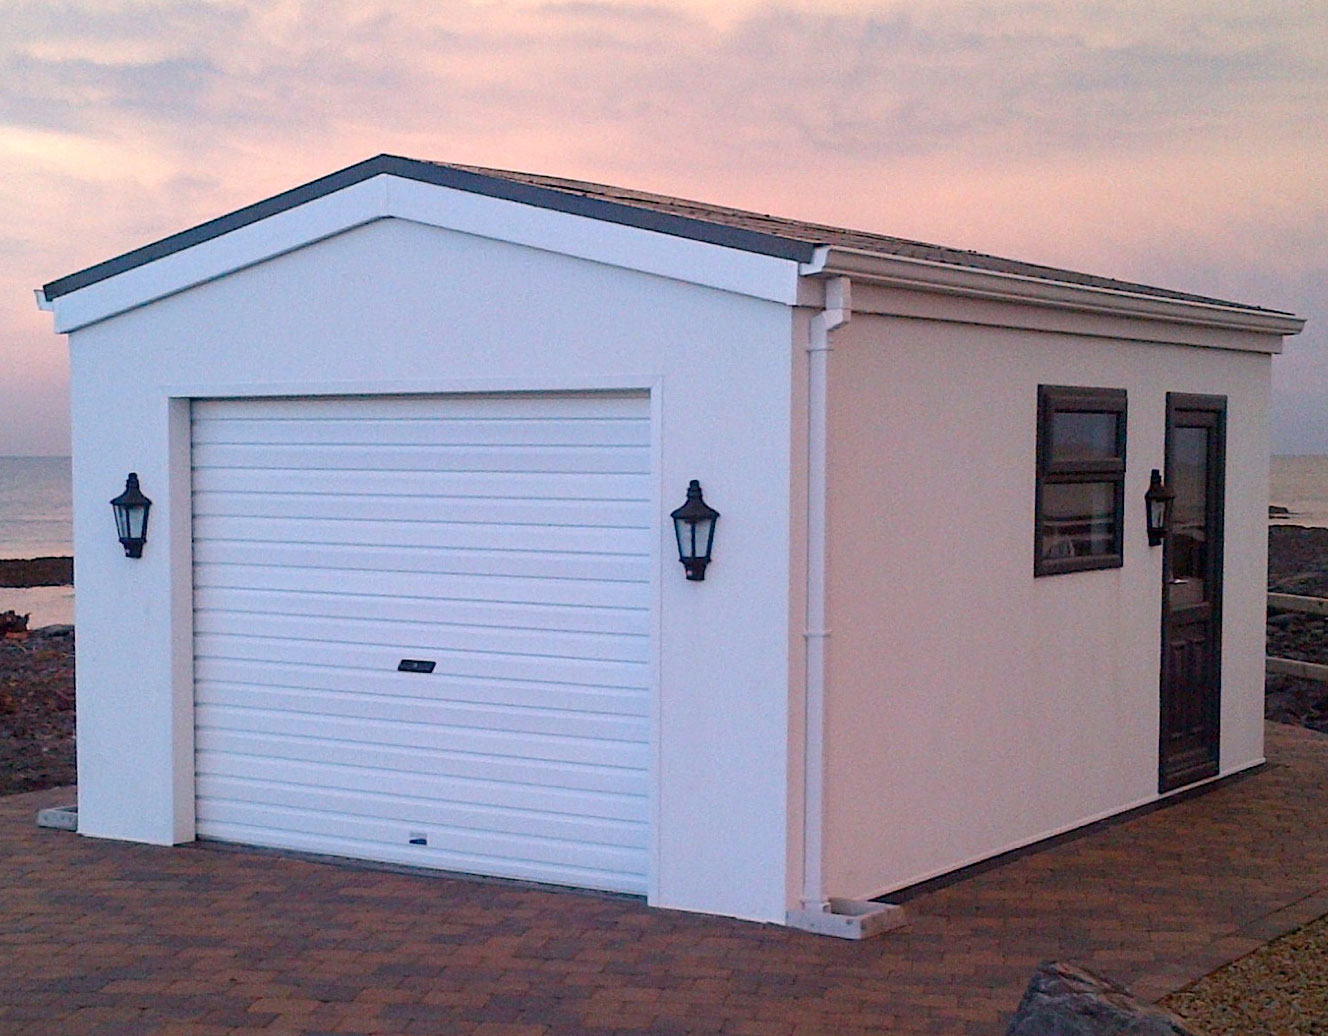 pre utility garage double full sheds carport cover size built of garages large portable metal shed with carports boat